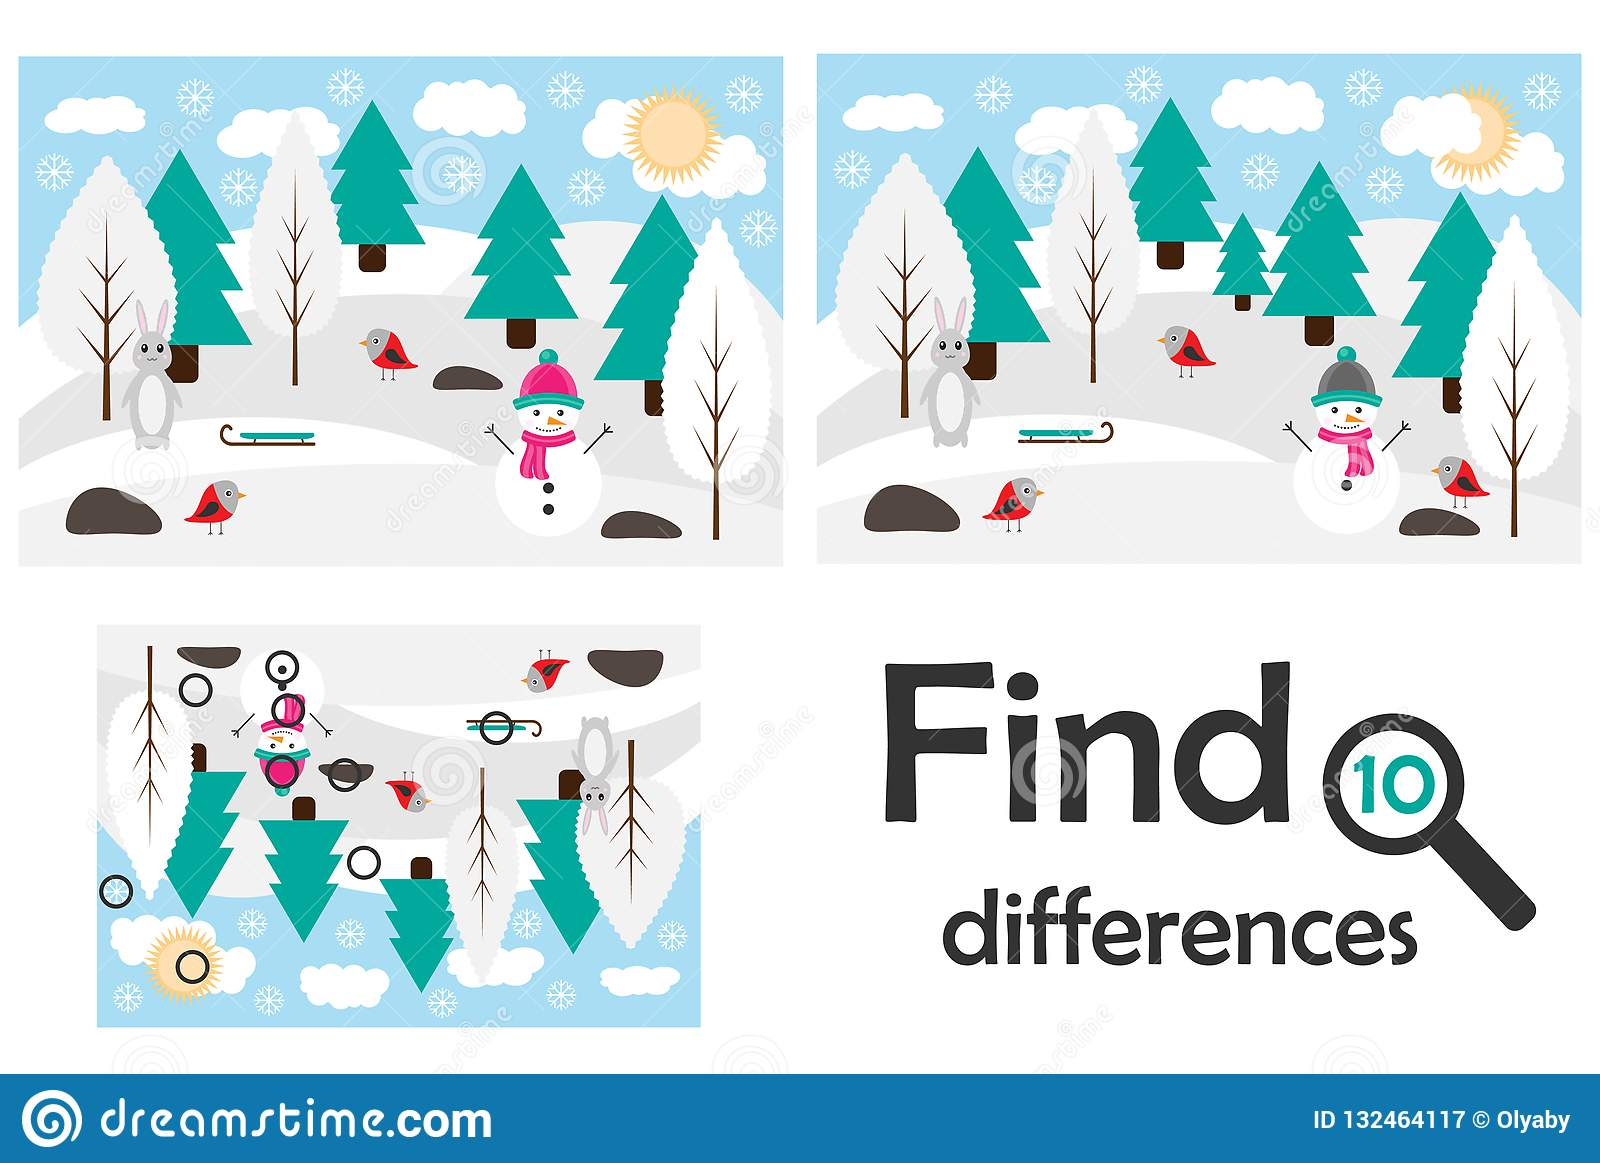 Find 10 Differences Game For Children Winter Snowy